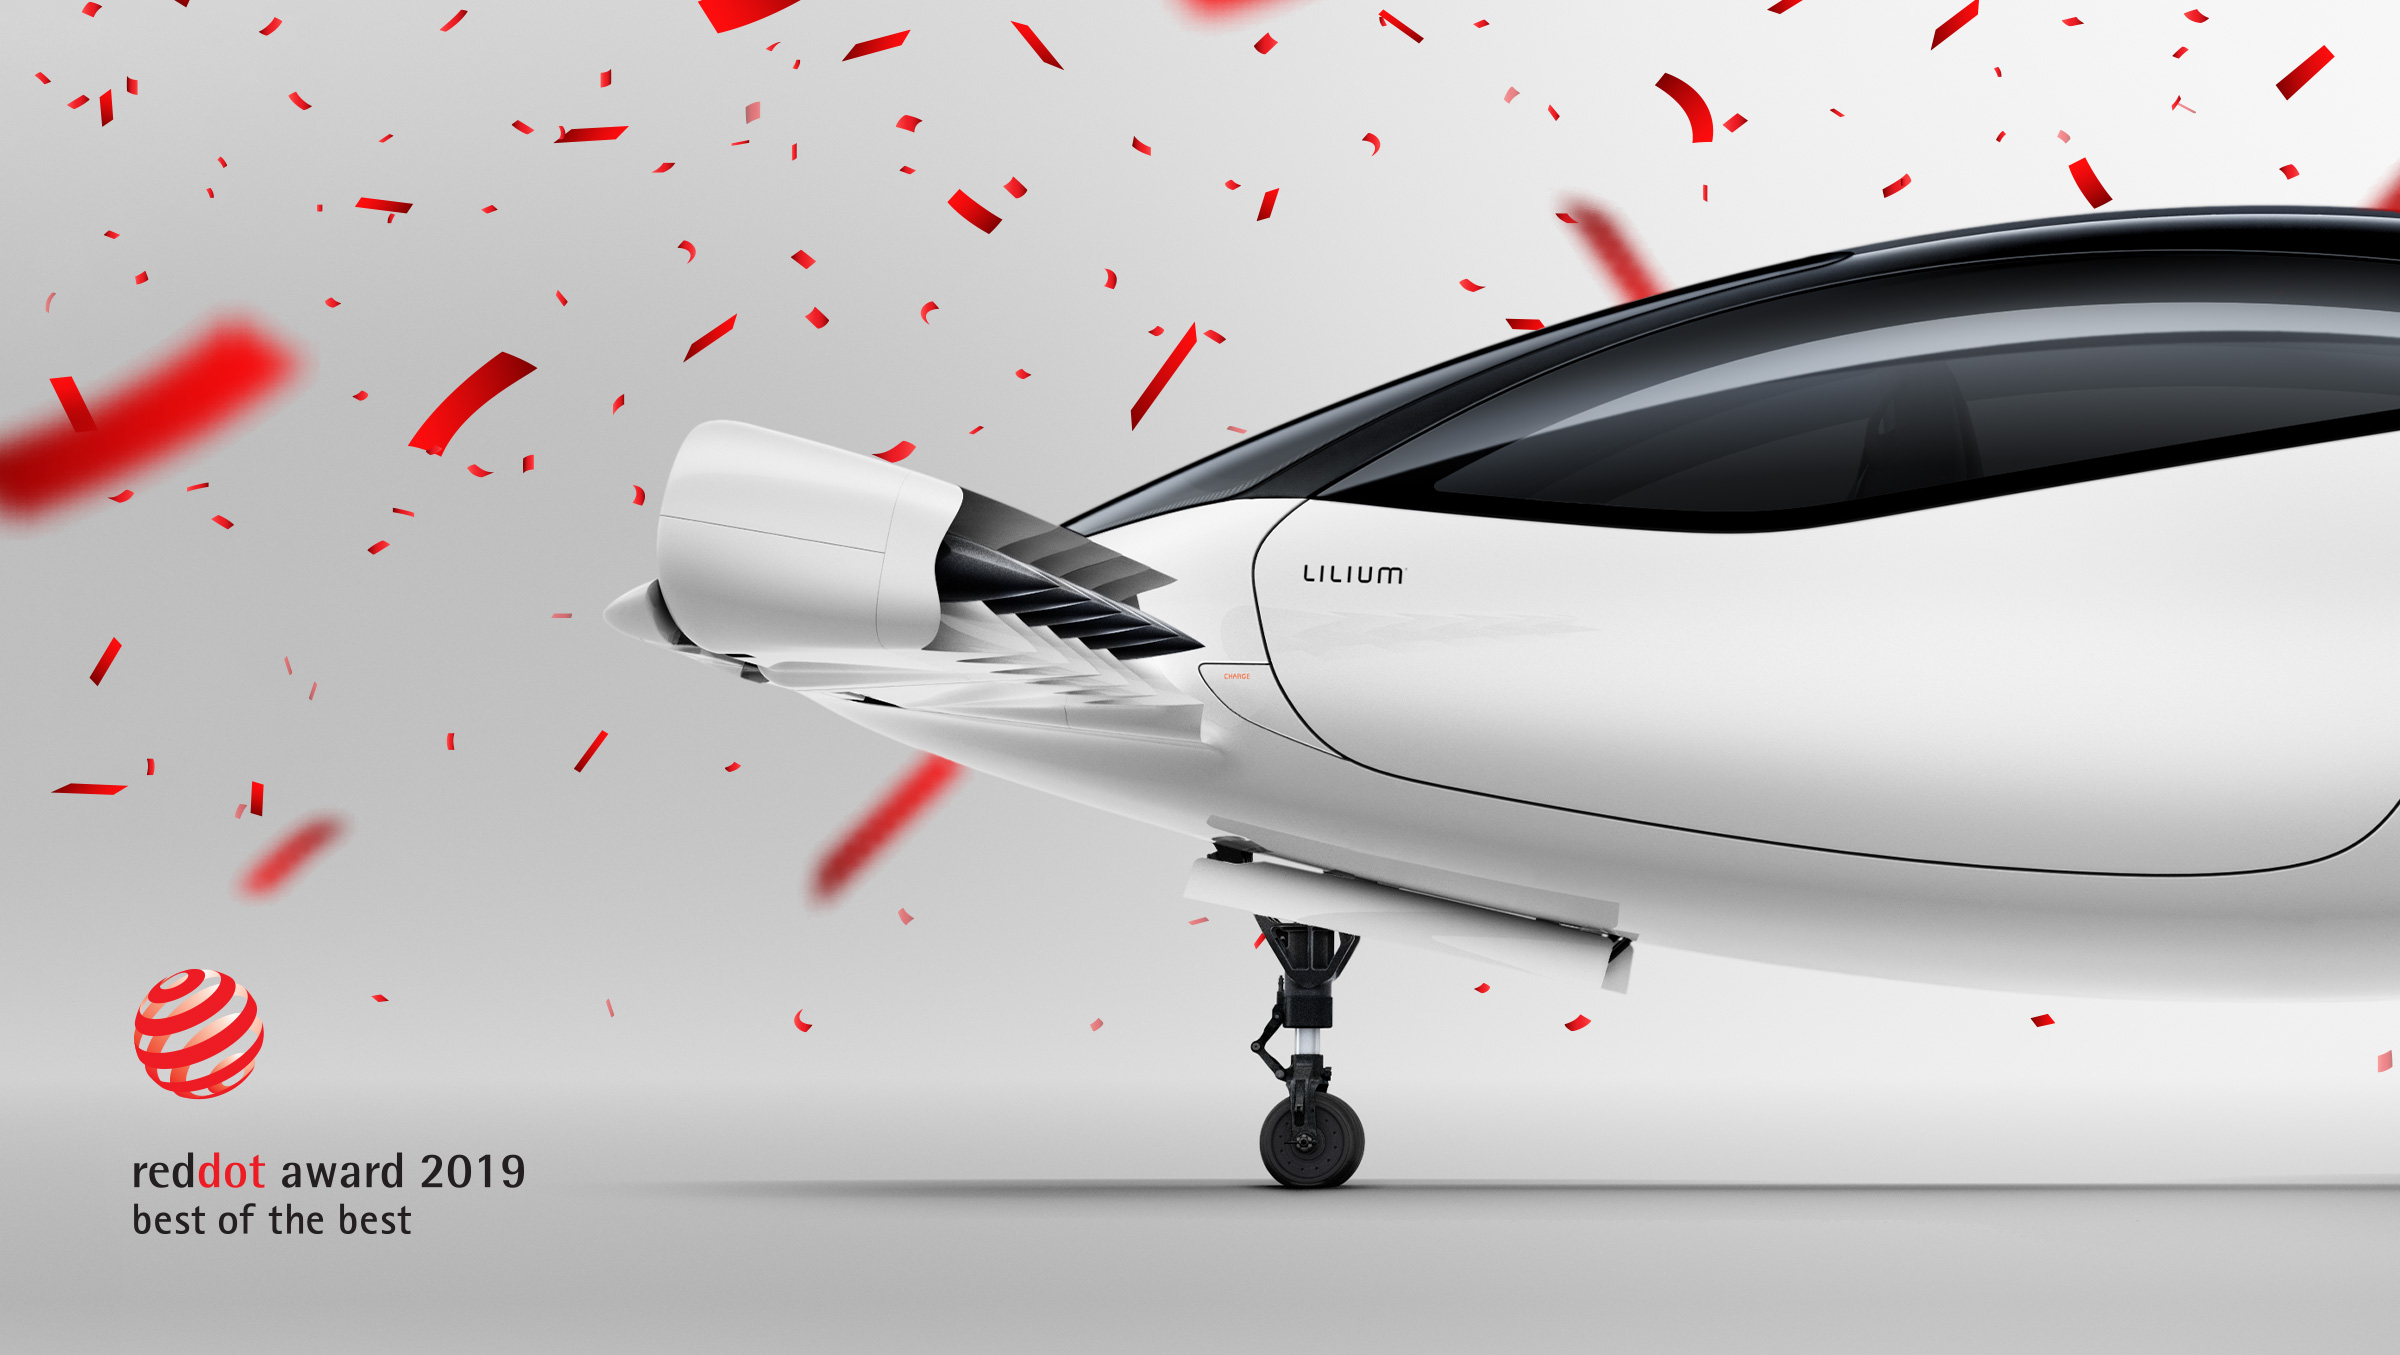 Lilium Jet awarded Red Dot 'Best of the best' Design award